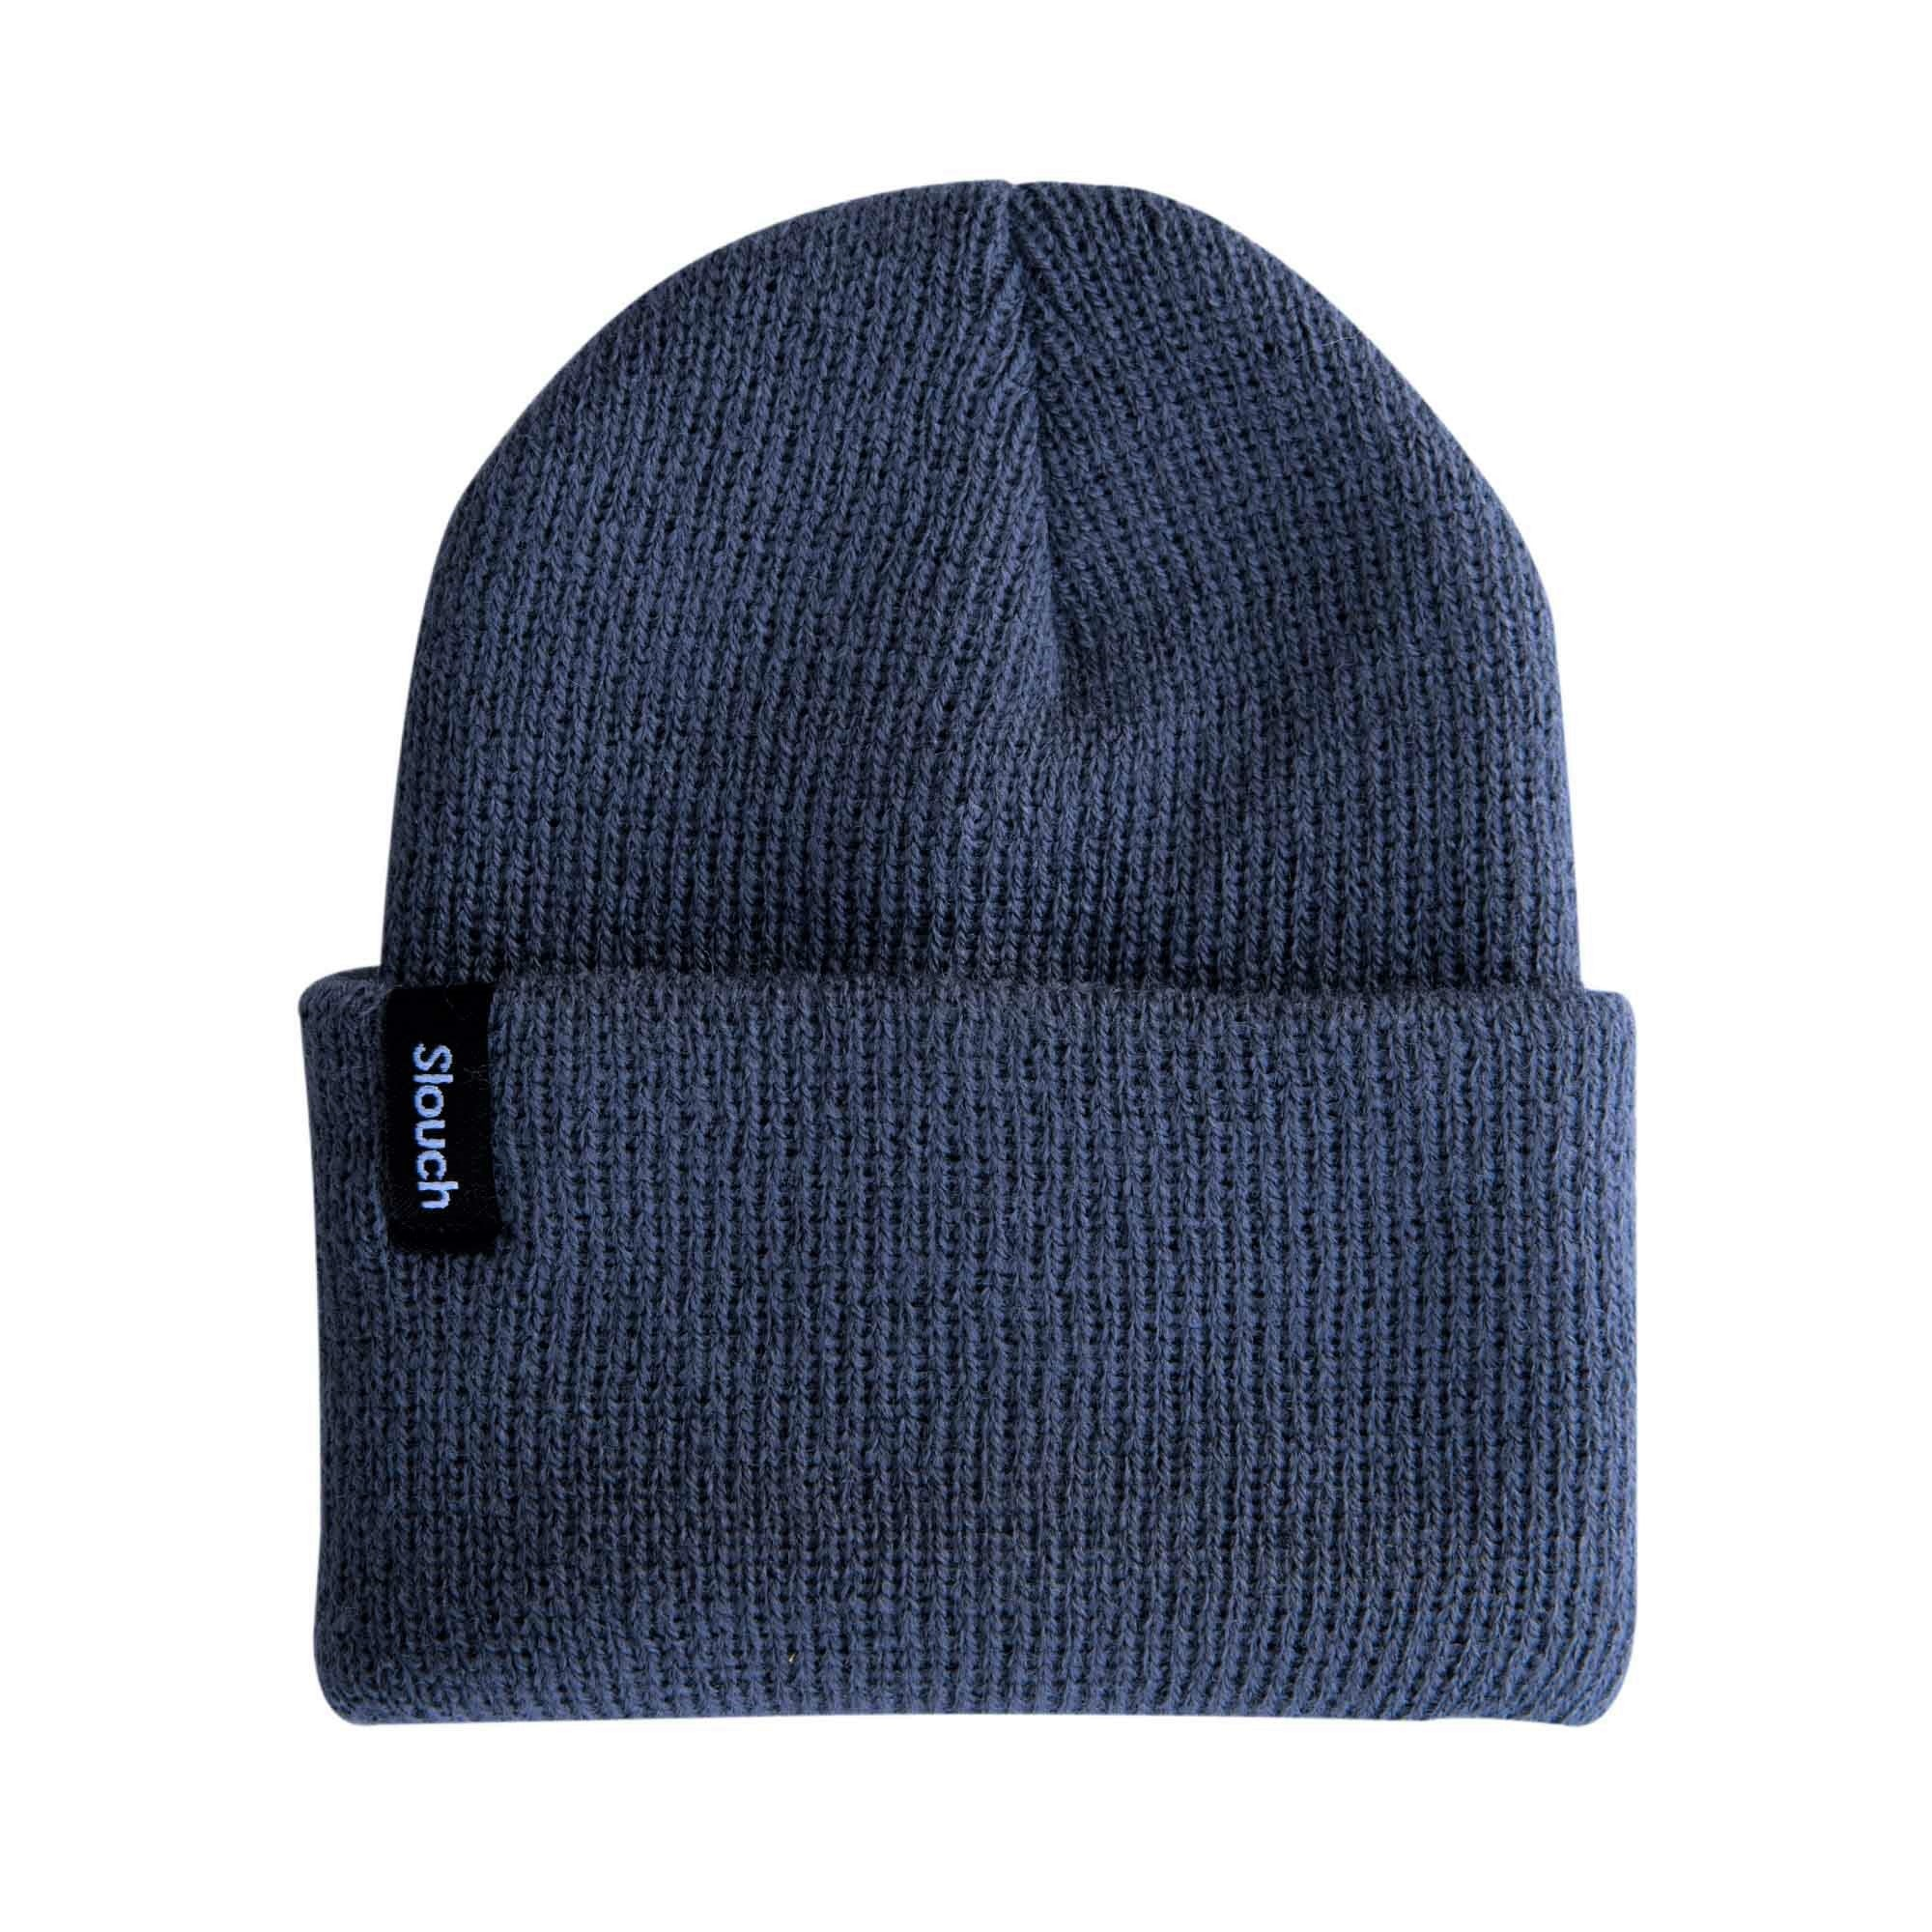 Cool Daddy Shark Beanie Hats Knit Caps for Unisex